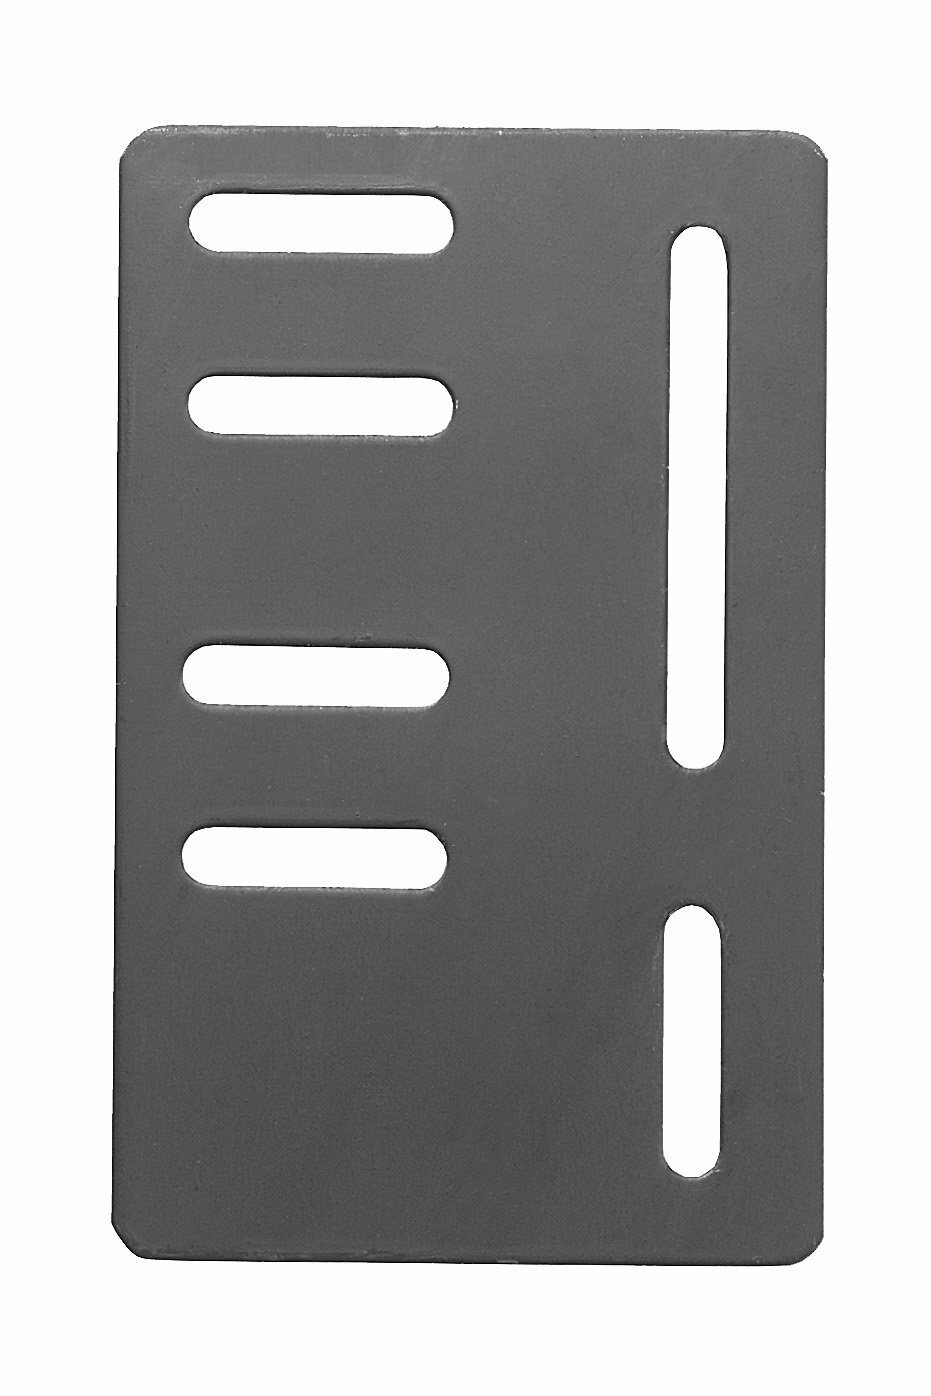 Durable Vertical Modification Plates for Headboard Useful,Set of 2